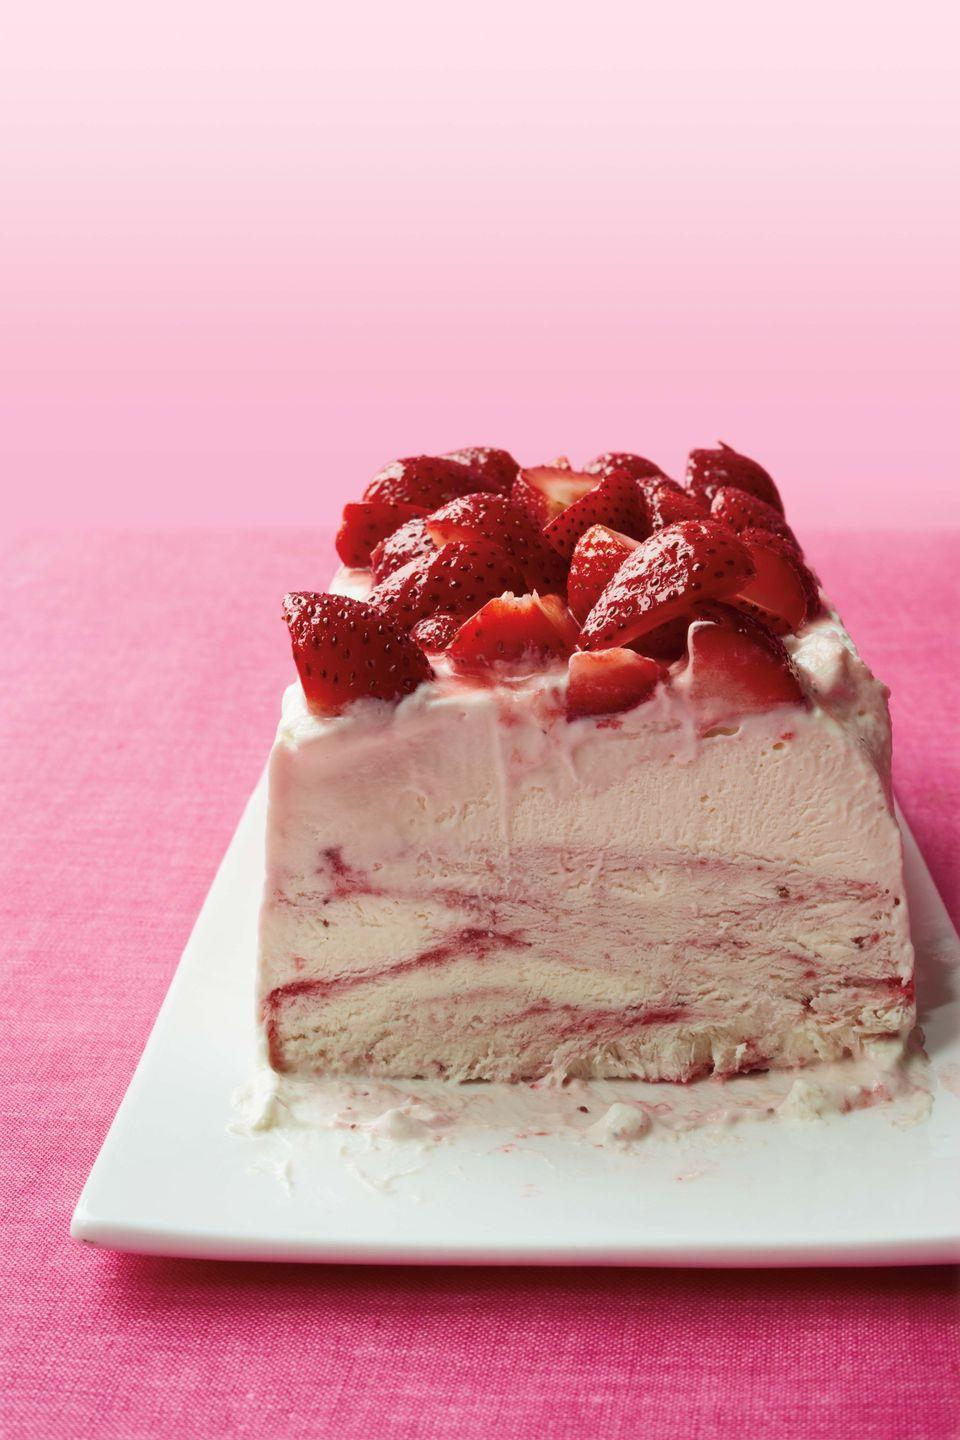 """<p>This 6-ingredient treat is made in a loaf pan and only takes about an hour from start to finish — easiest cheesecake ever!</p><p><em><a href=""""https://www.womansday.com/food-recipes/food-drinks/recipes/a11347/strawberry-ice-cream-cheesecake-recipe-wdy0812/"""" rel=""""nofollow noopener"""" target=""""_blank"""" data-ylk=""""slk:Get the recipe from Woman's Day »"""" class=""""link rapid-noclick-resp"""">Get the recipe from Woman's Day »</a></em></p>"""